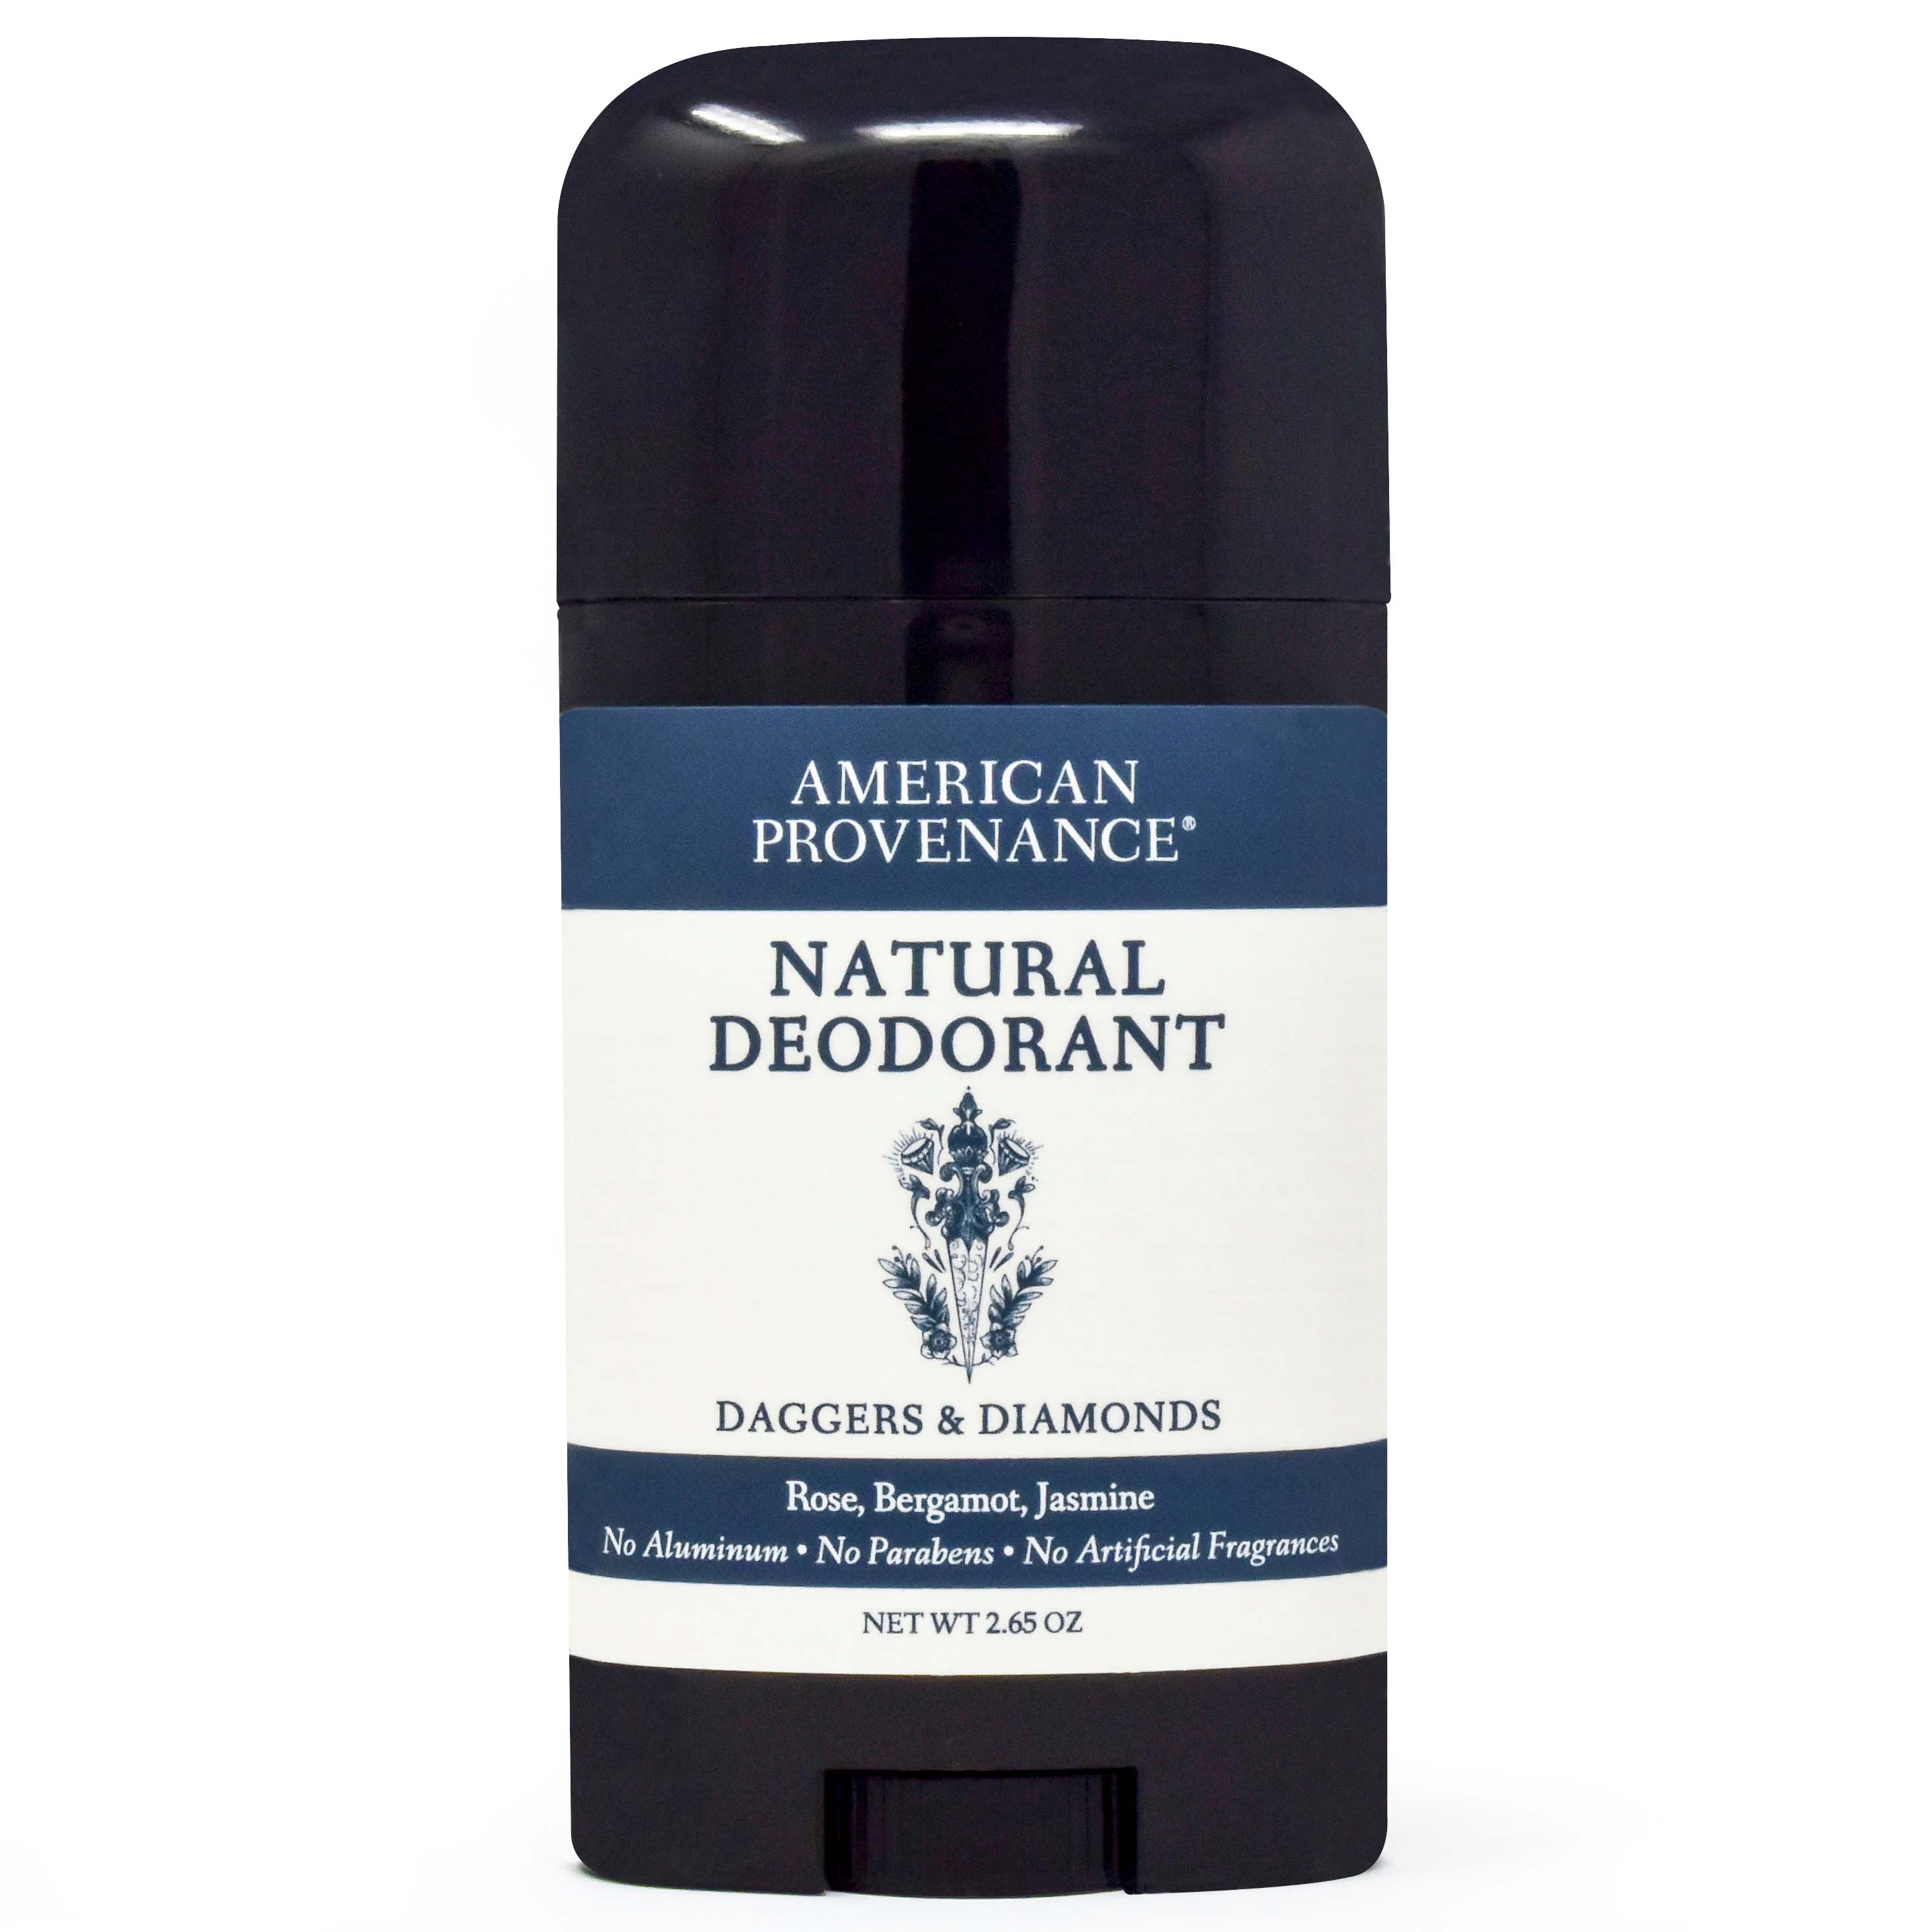 American Provenance Natural Deodorant Daggers + Diamonds